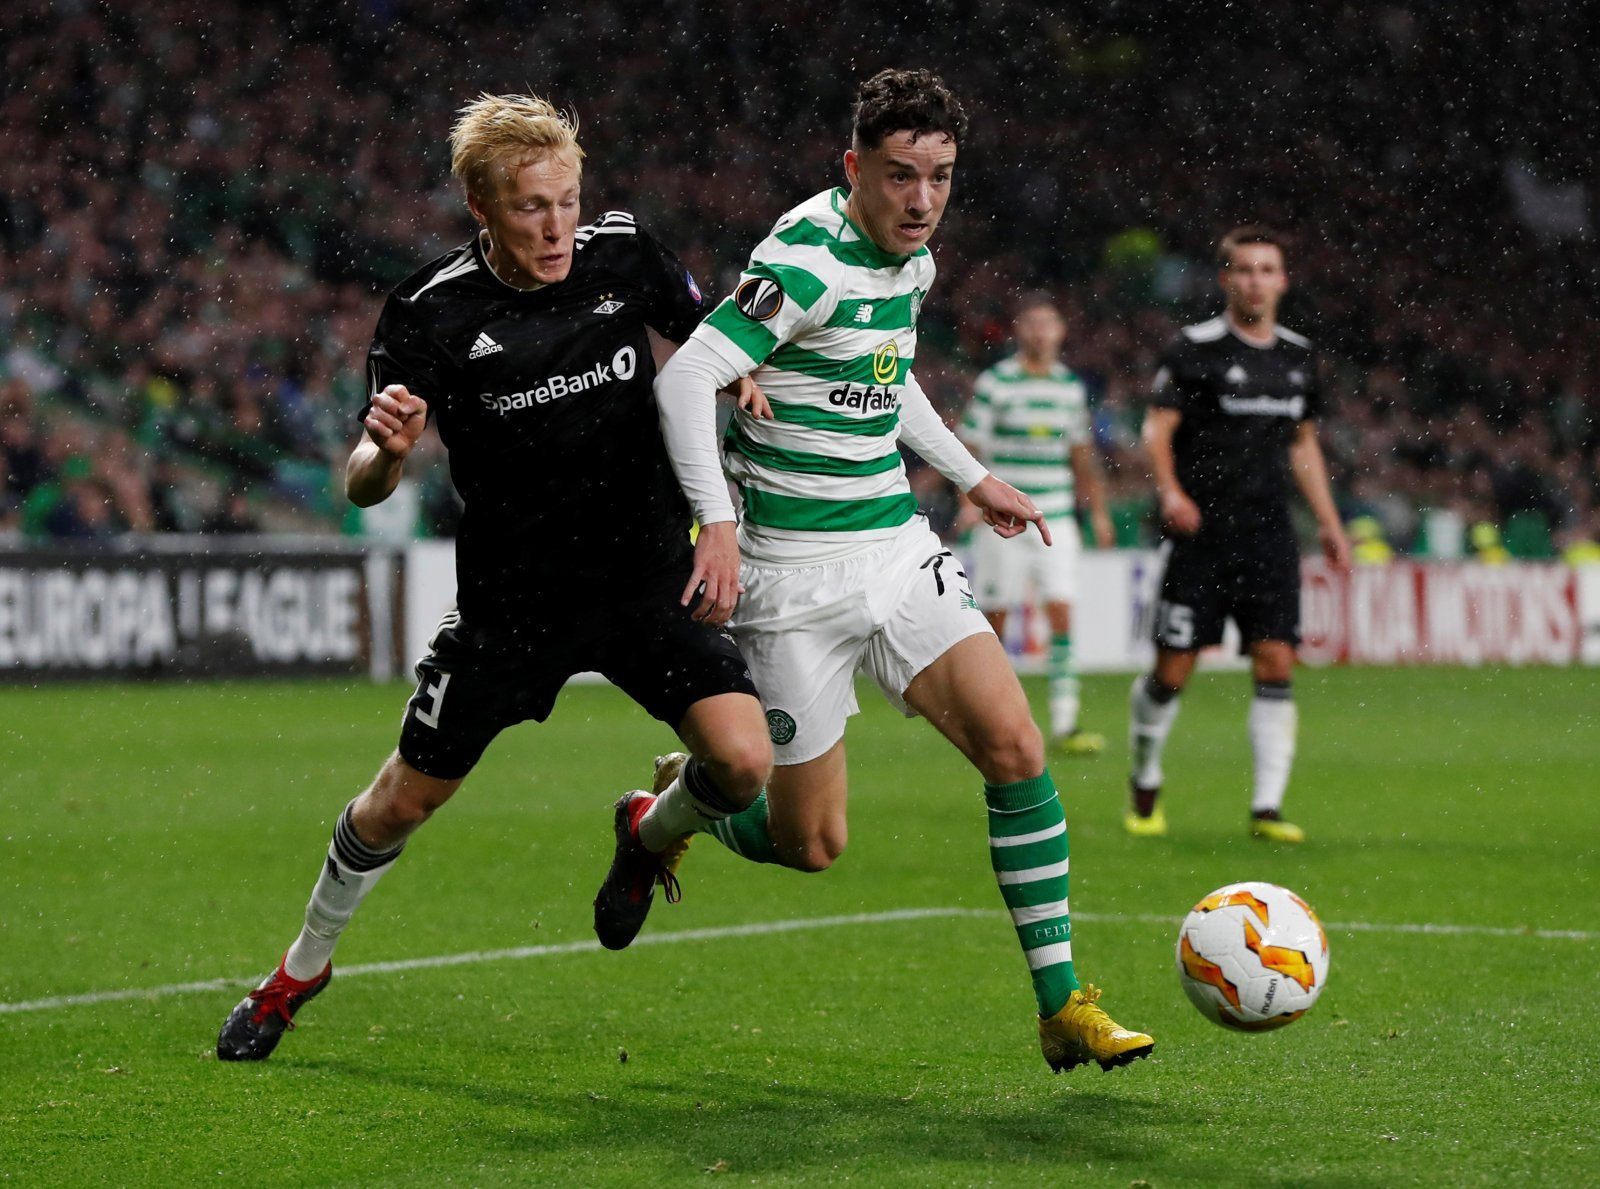 Celtic: Mikey Johnston withdraws from Scotland under-21 squad with injury